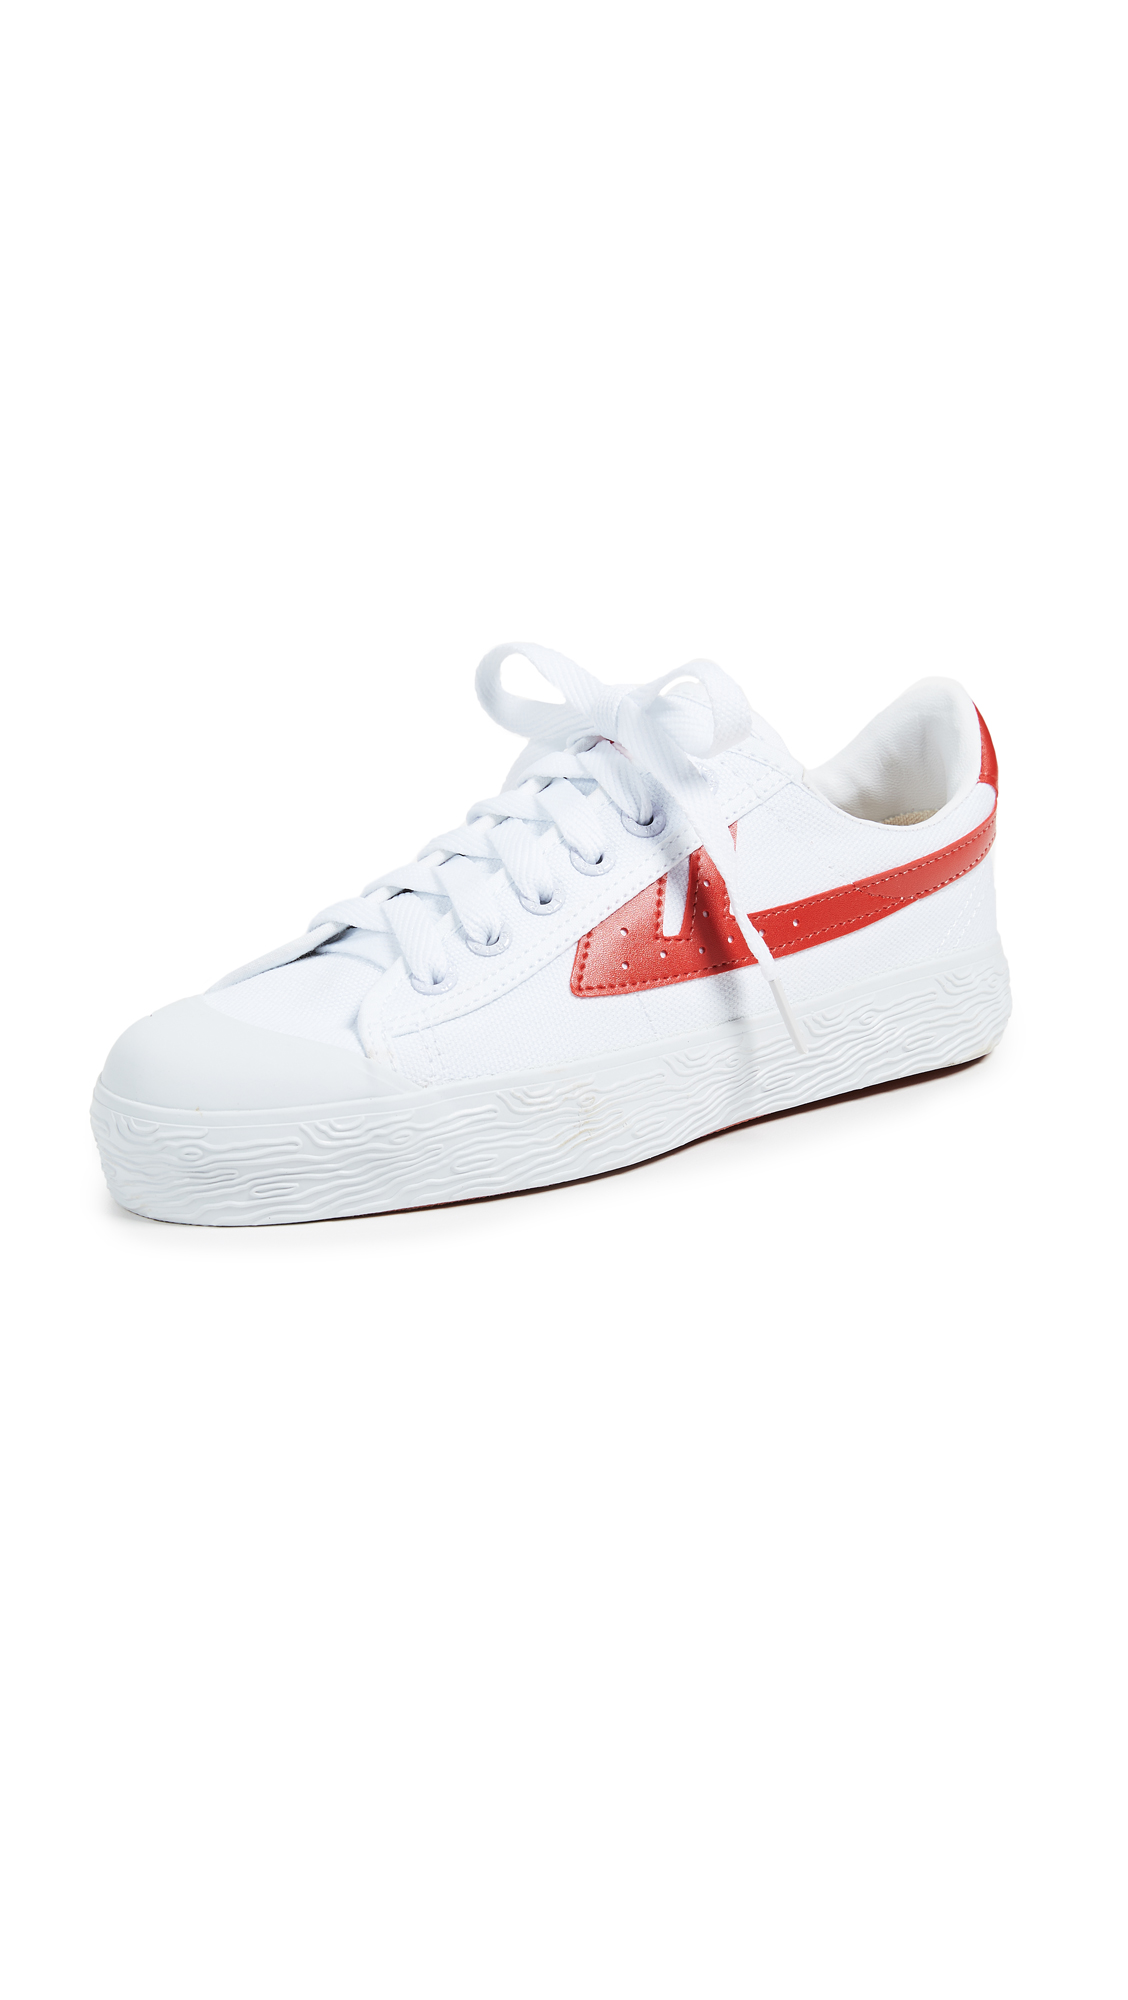 WOS33 Classic Sneakers - White/Red